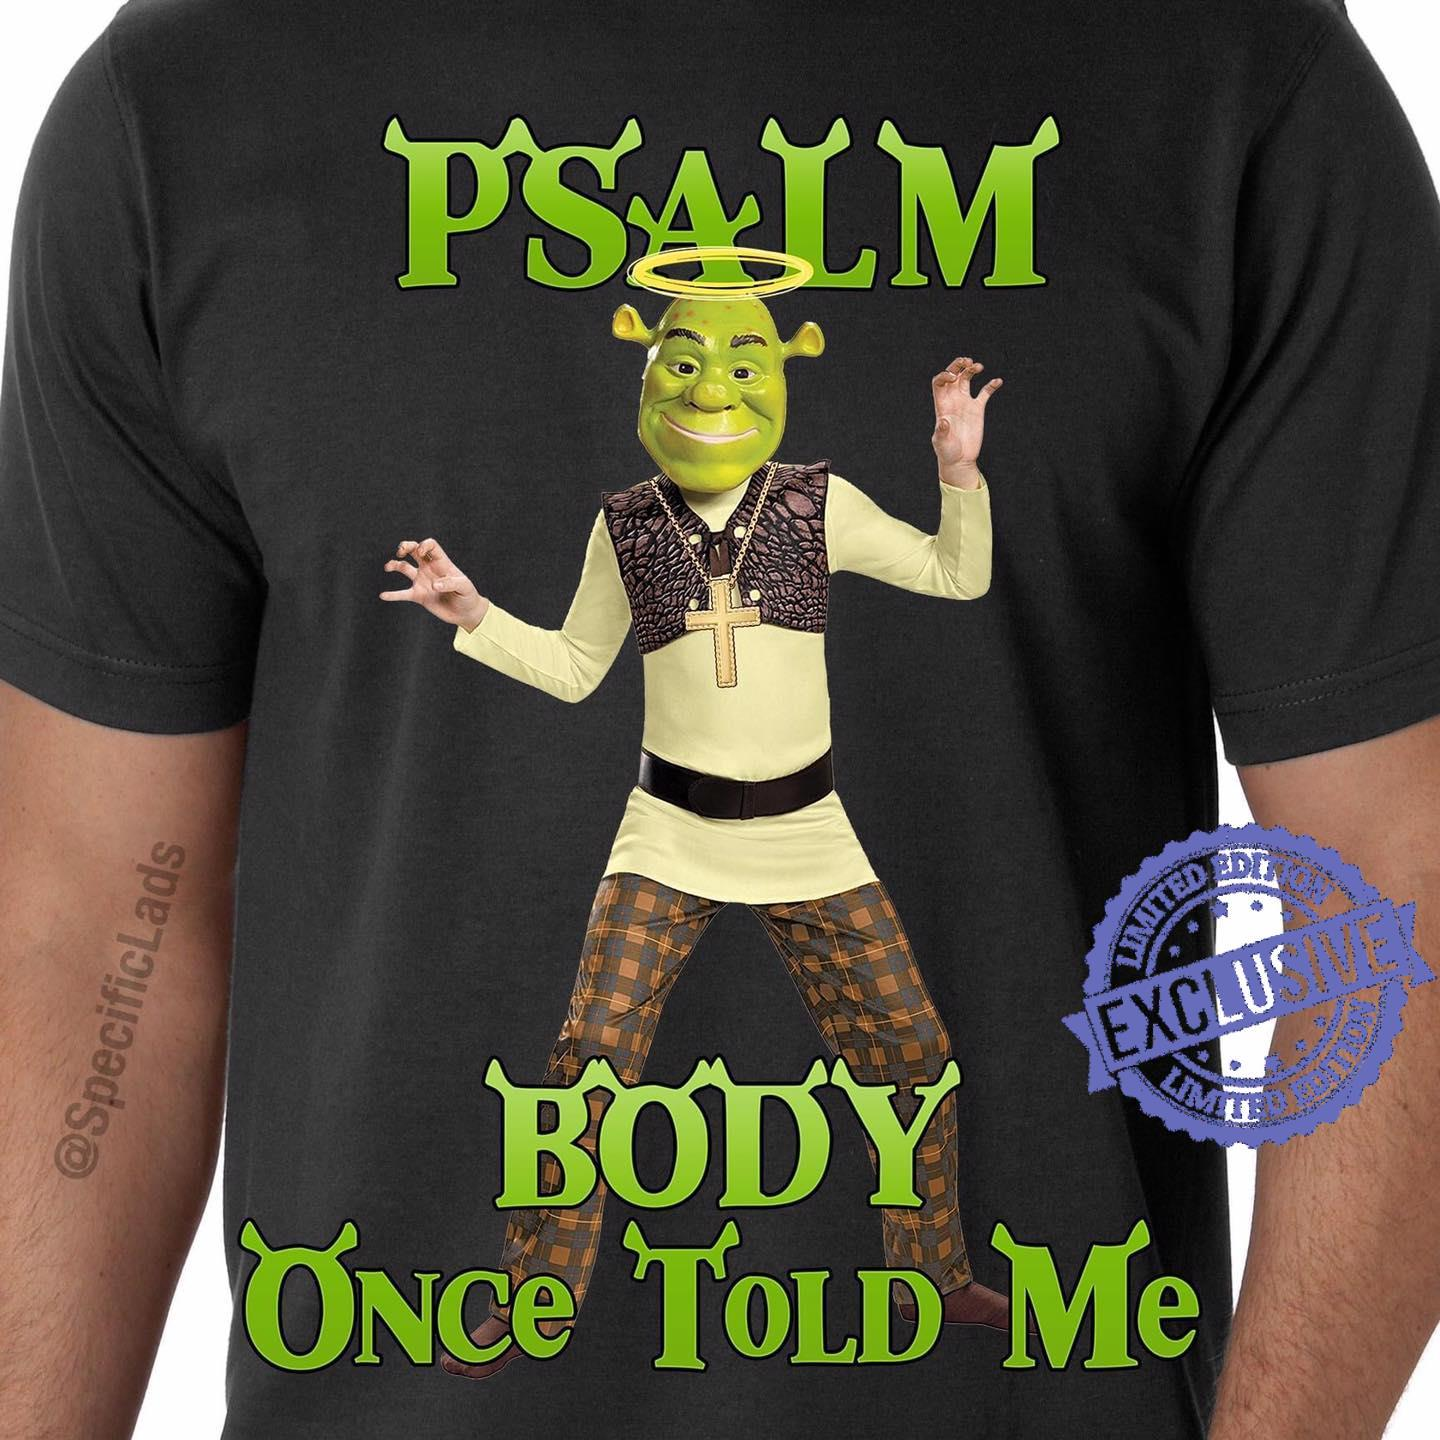 Psalm body once told me shirt